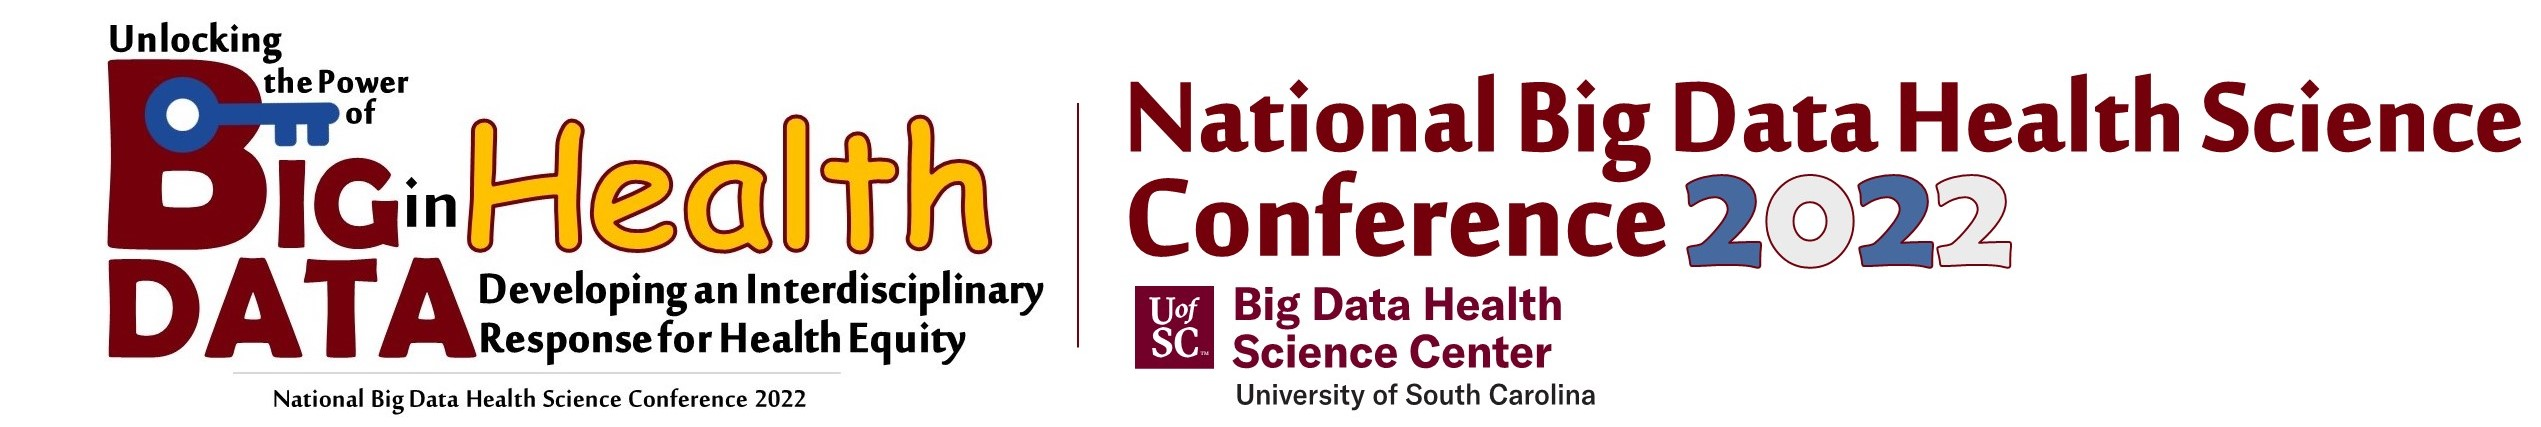 SC Big Data Health Science Center Conference 2022